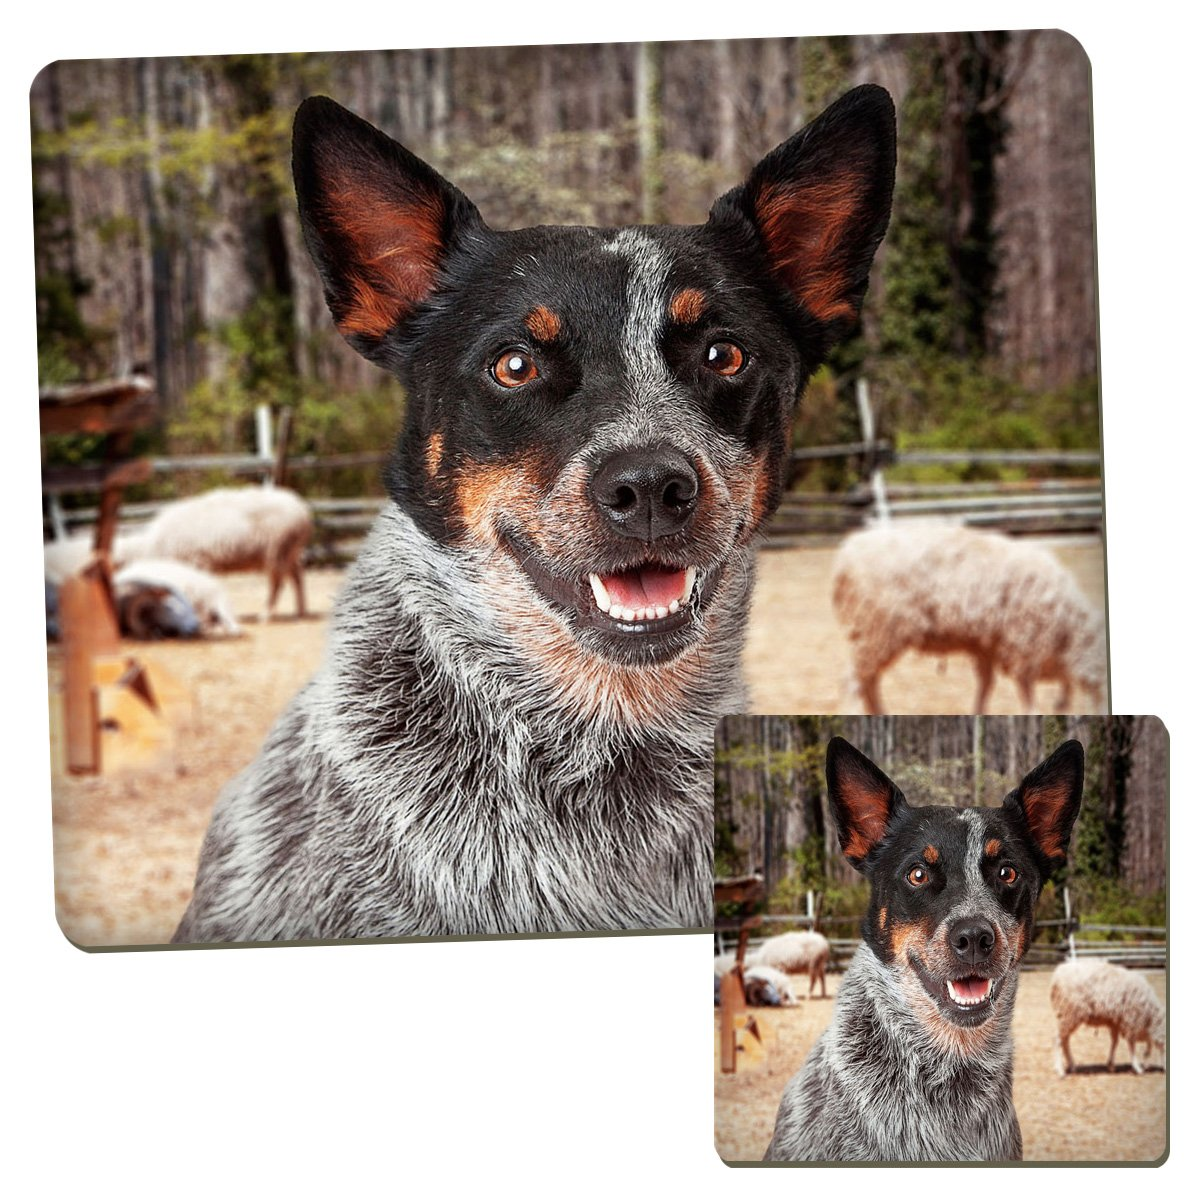 Australian Cattle Dog Animal Kids Placemat & Coaster Set 012